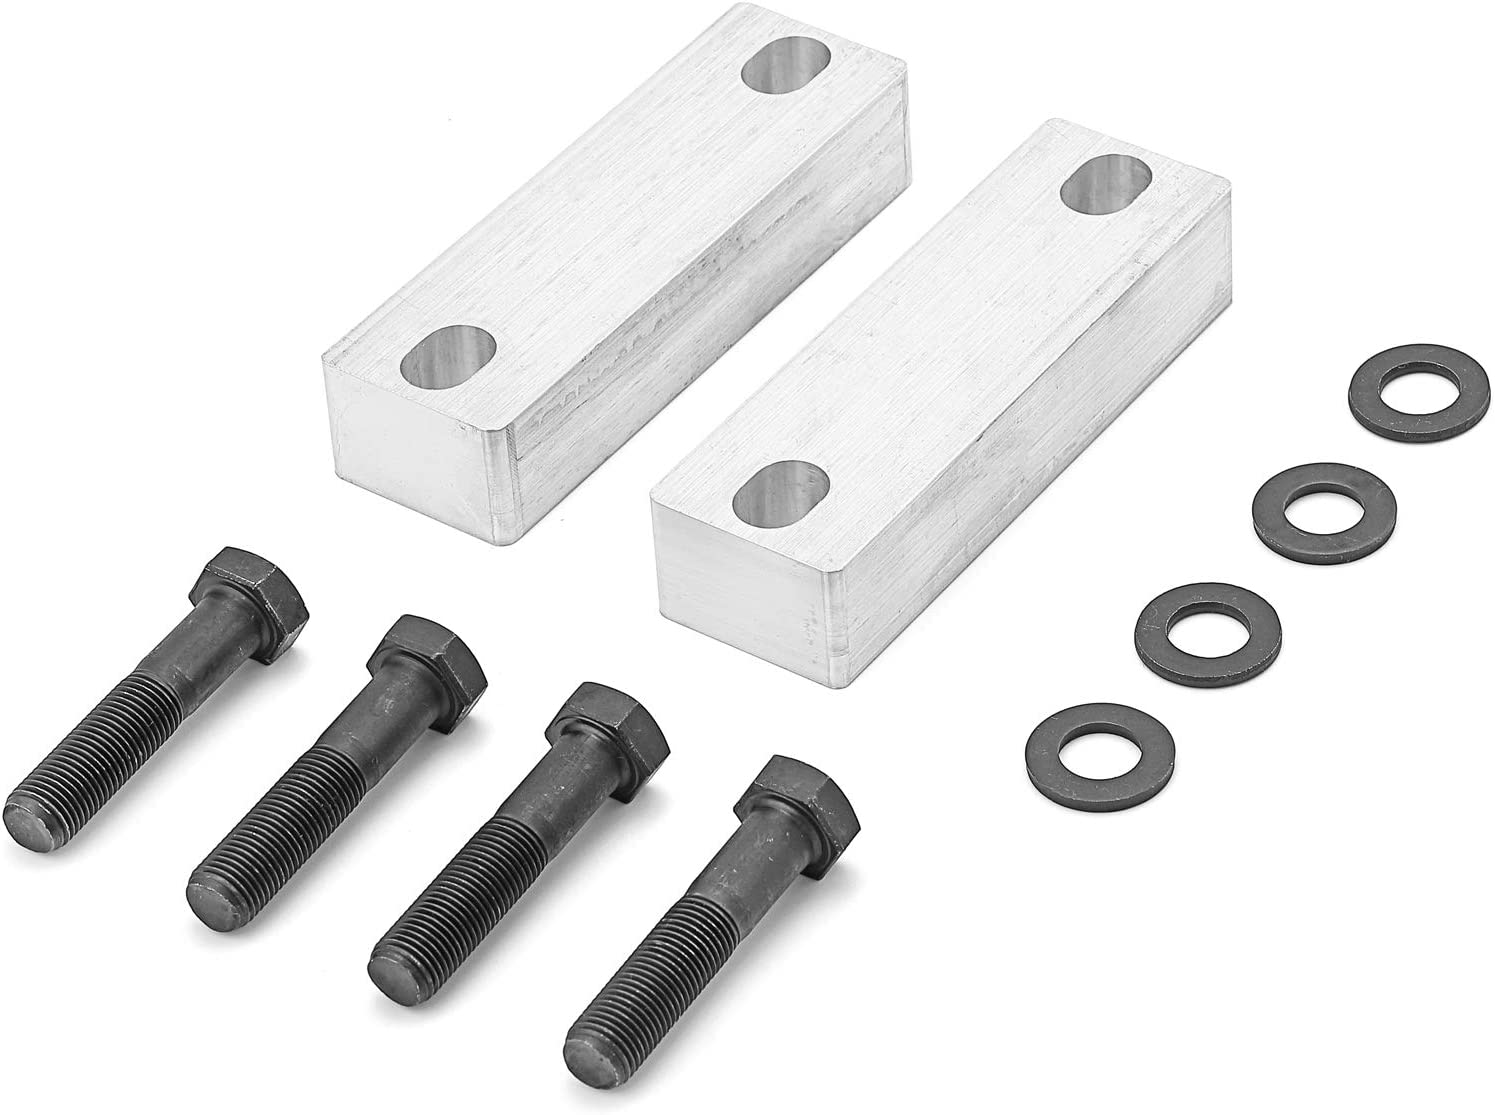 WeiSen T6 Billet Aluminum Sway Bar Drop Bracket for 2-4 Lift Compatible with Toyota Tundra 2007-2019 2WD /& 4WD